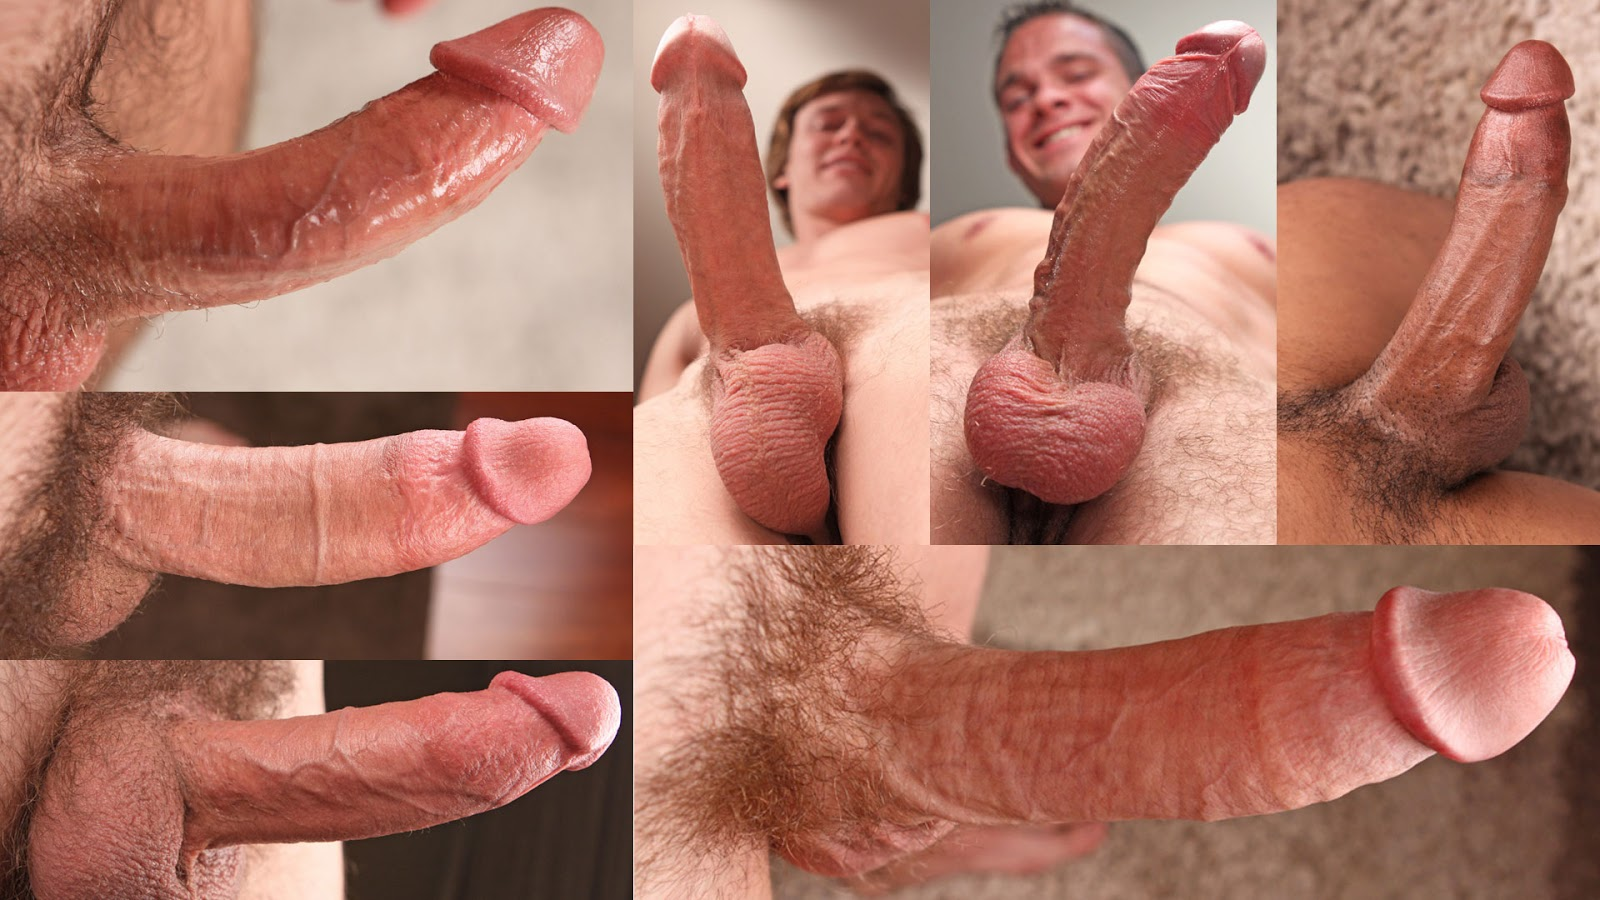 Danny dong big dick something also